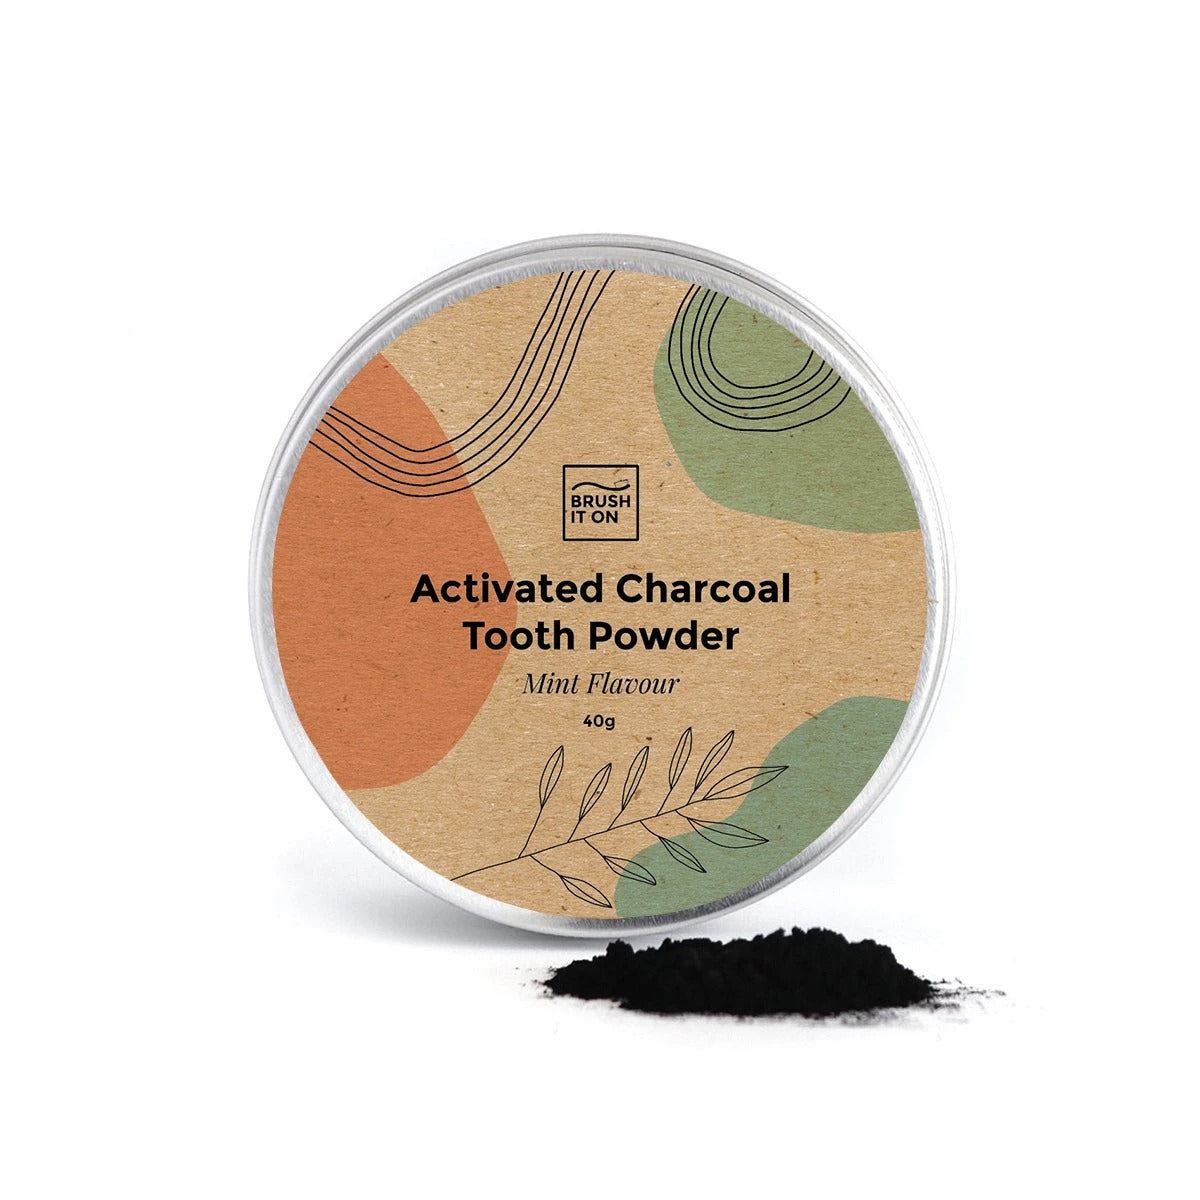 Activated Charcoal Tooth Powder - Pookipoiga